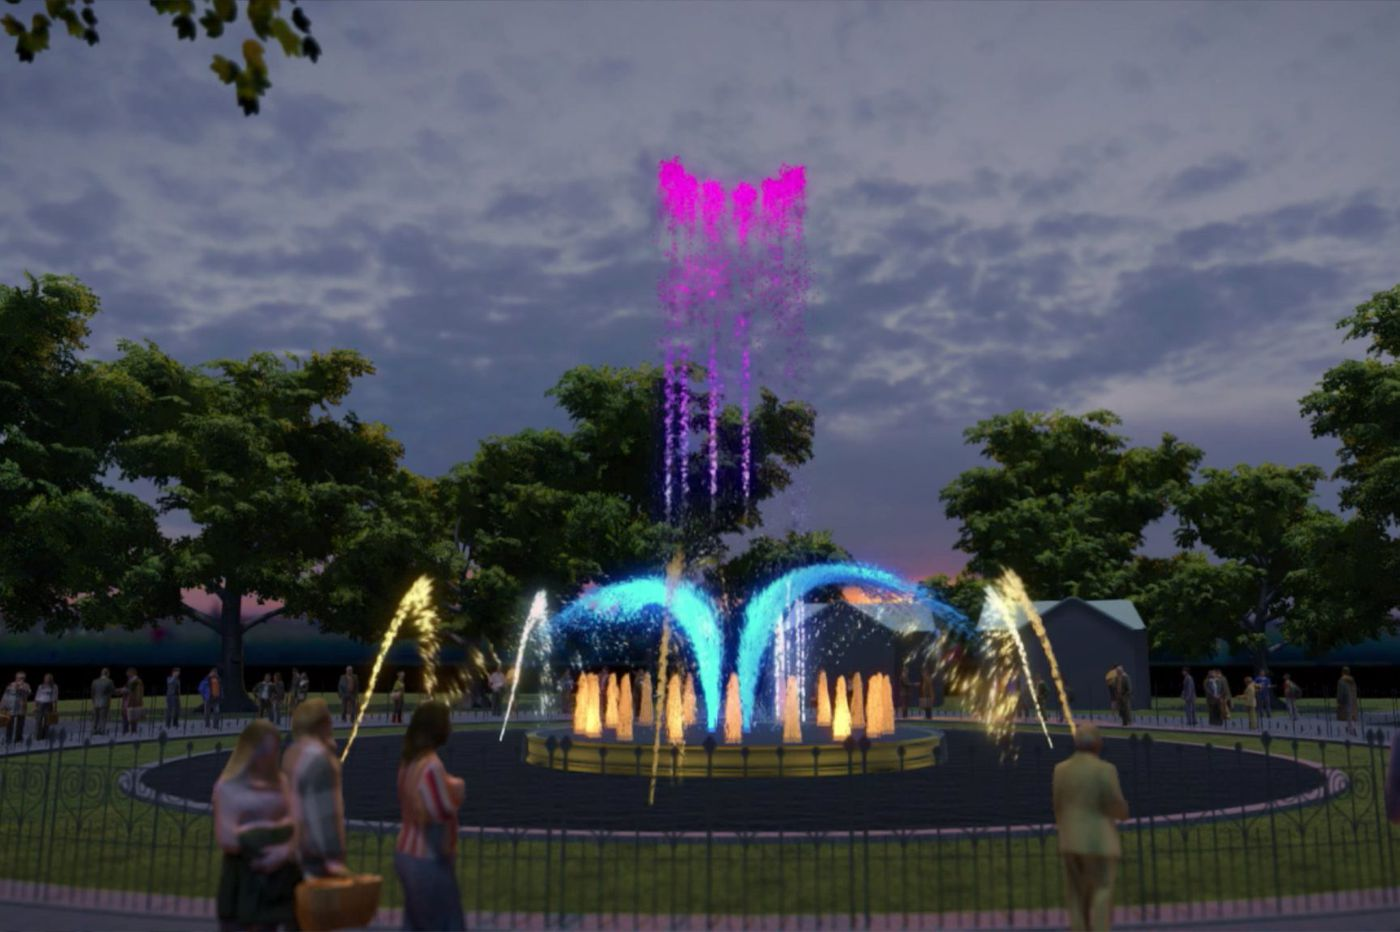 Franklin Square's historic fountain is getting a choreographed light show